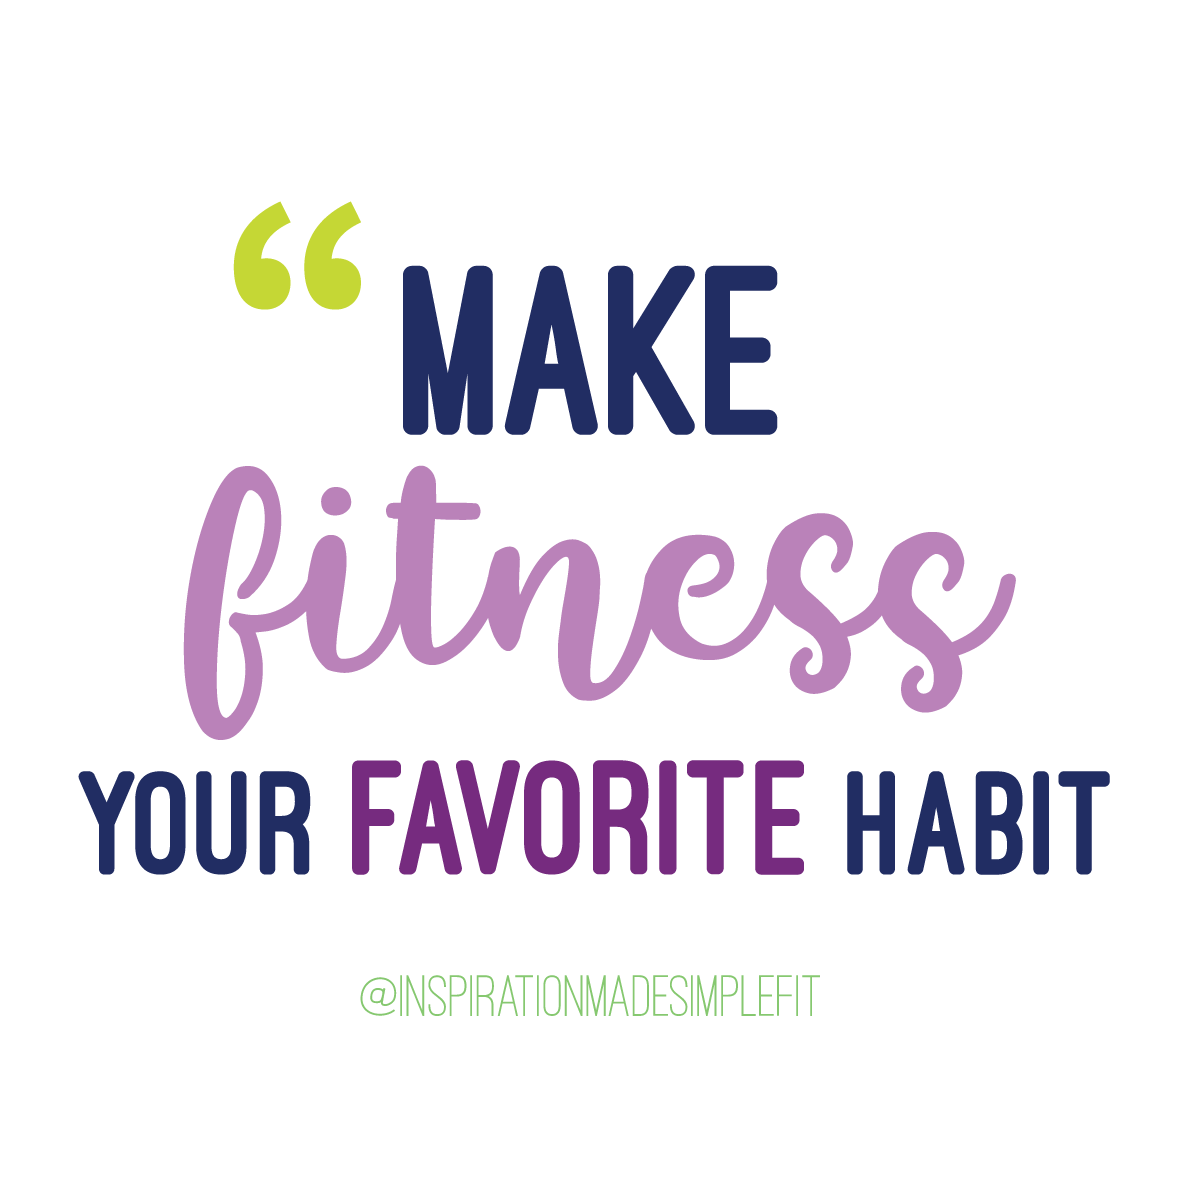 Make fitness your favorite habit